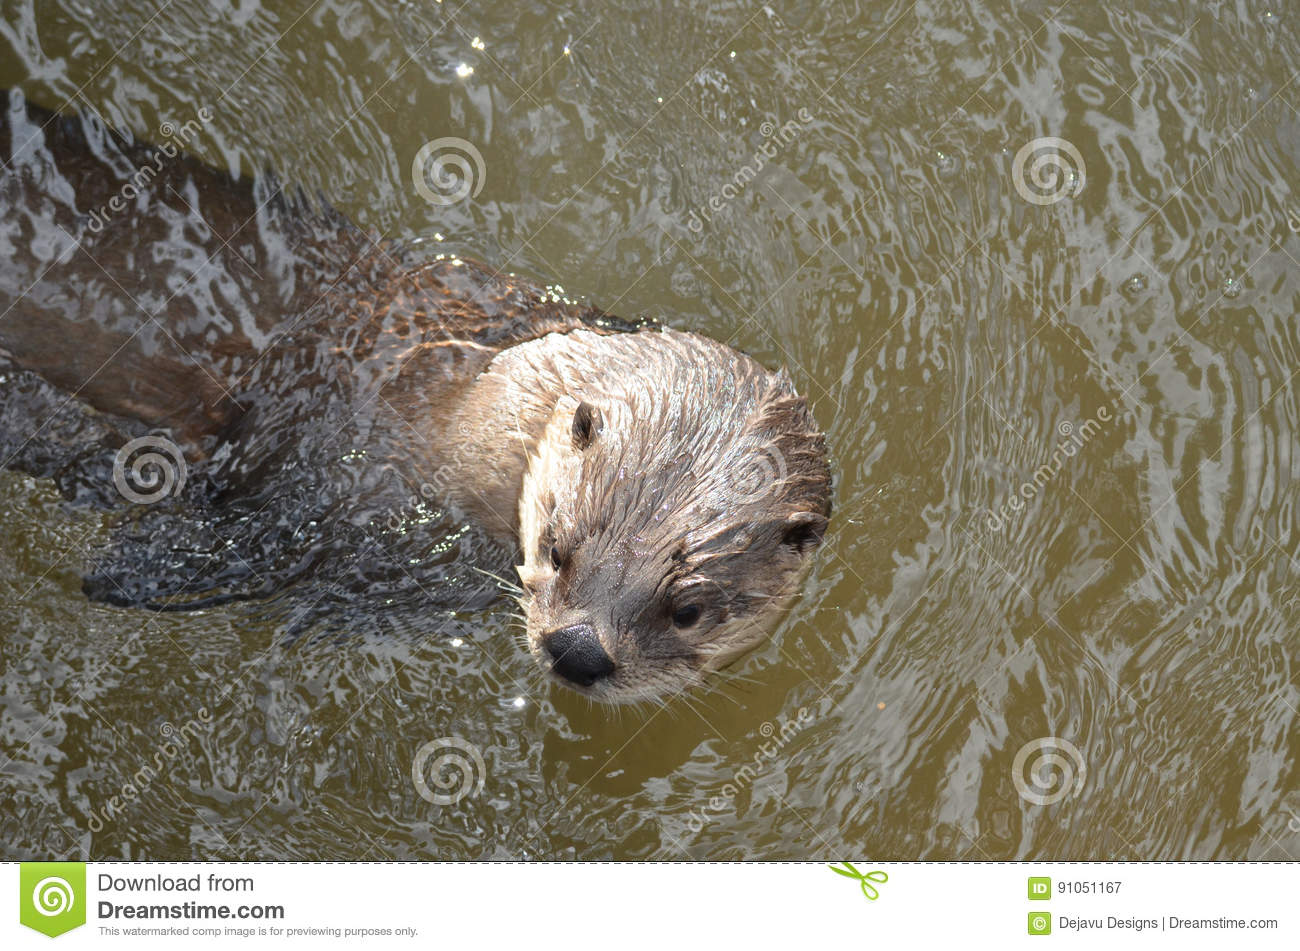 River Otter Peaking Out of a Muddy River